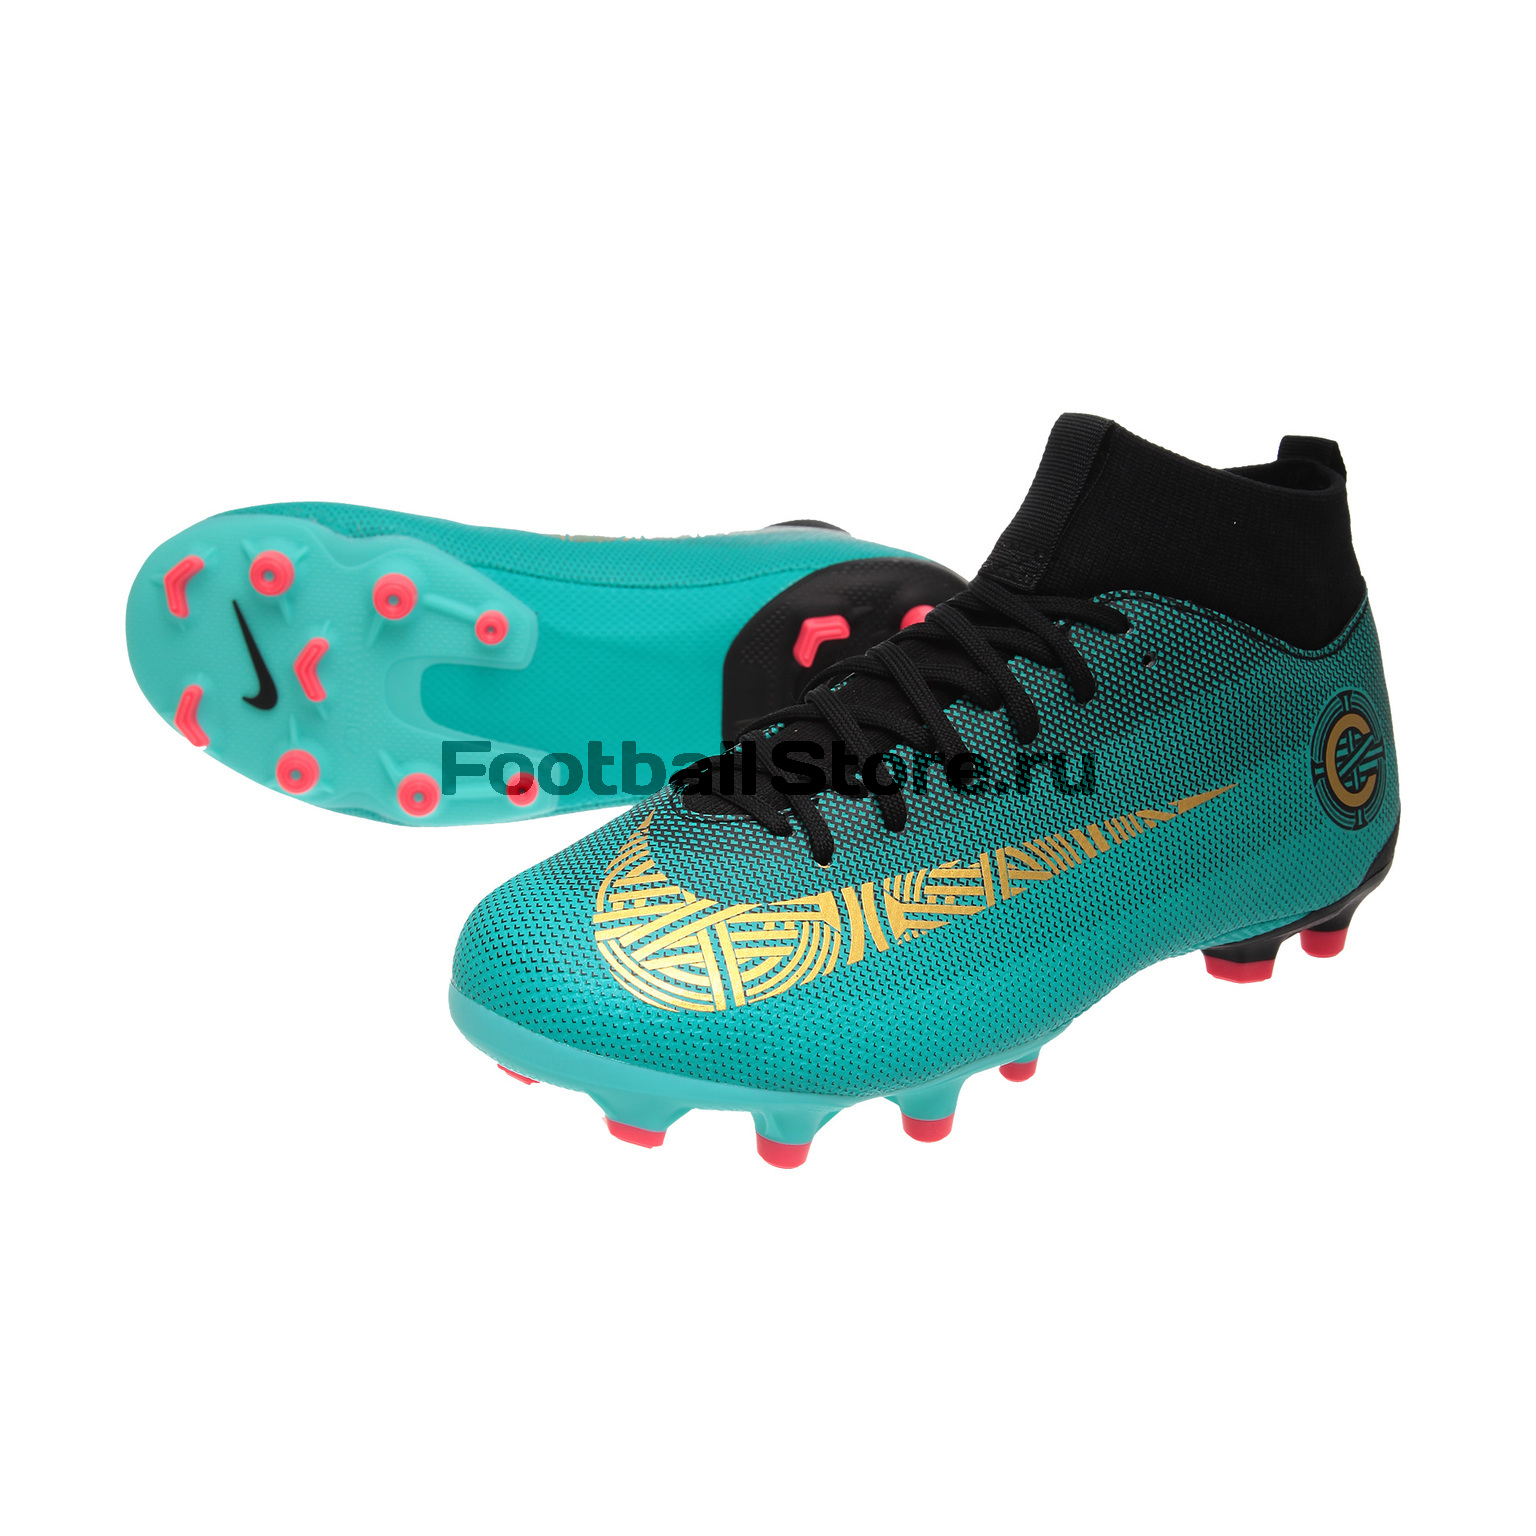 Бутсы Nike Superfly Academy GS CR7 JR FG/MG AJ3111-390 детские бутсы nike бутсы nike jr phantom 3 elite df fg ah7292 081